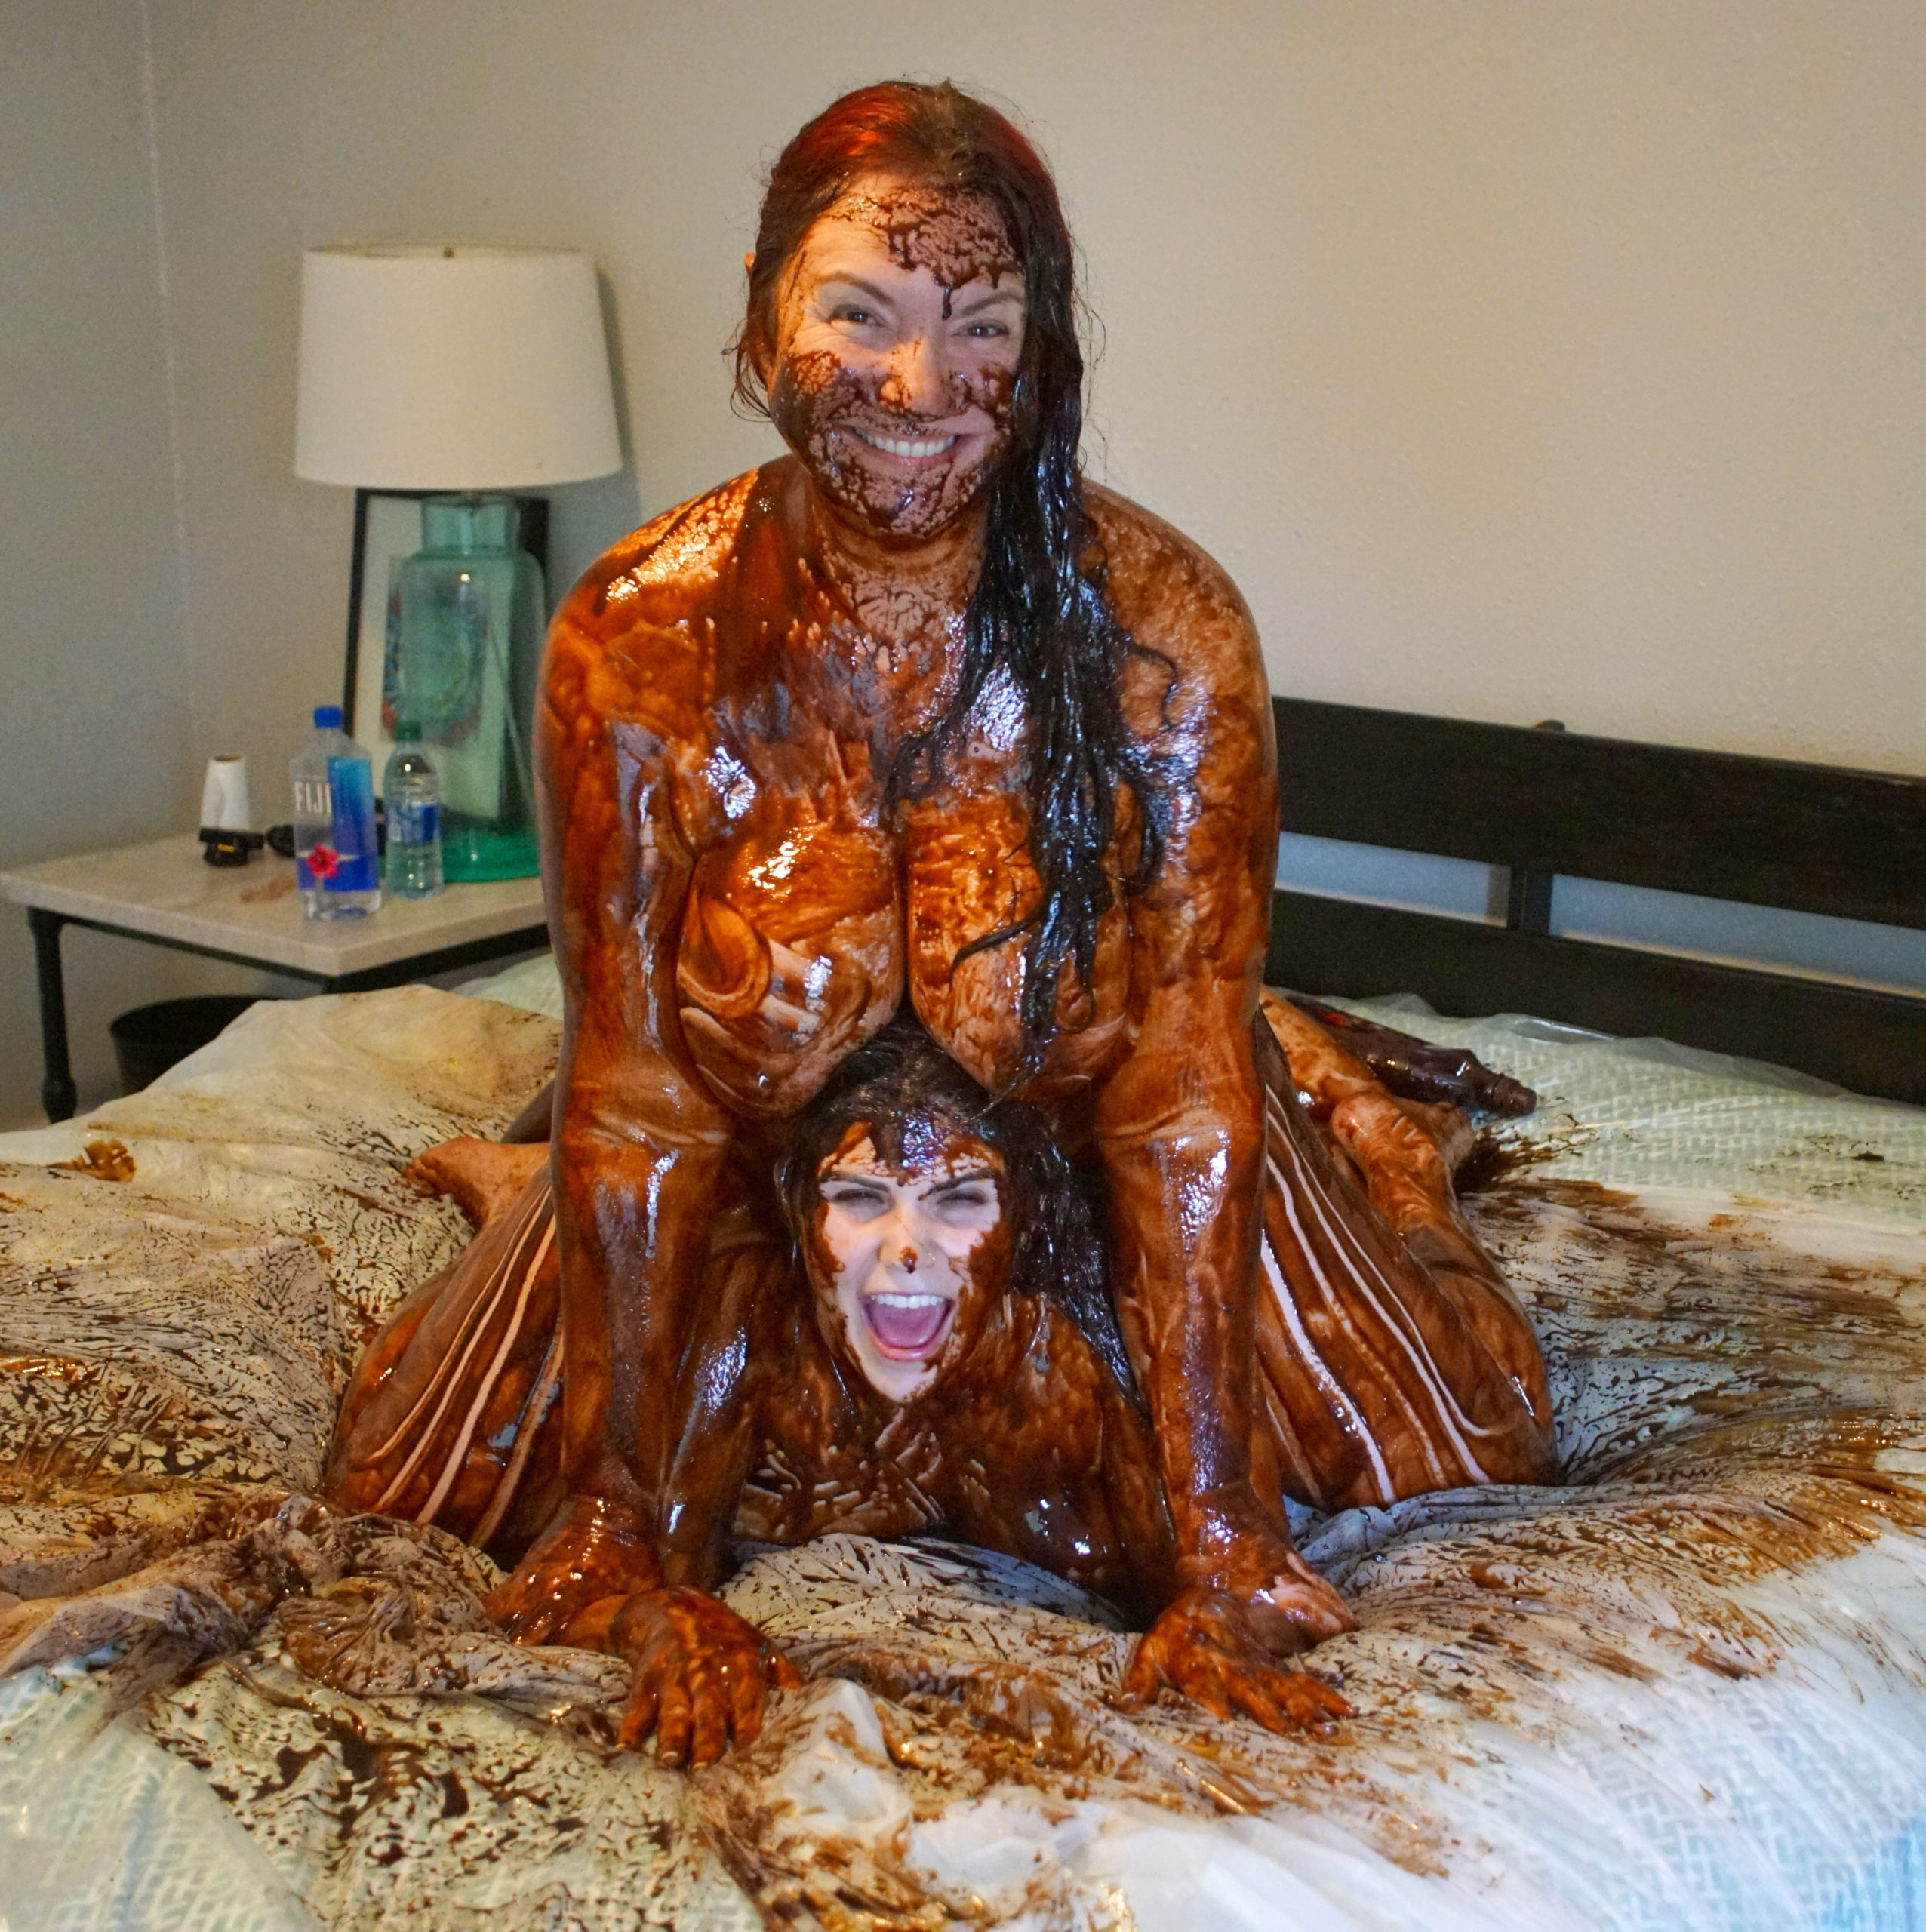 Cuddle Puddle, in chocolate!